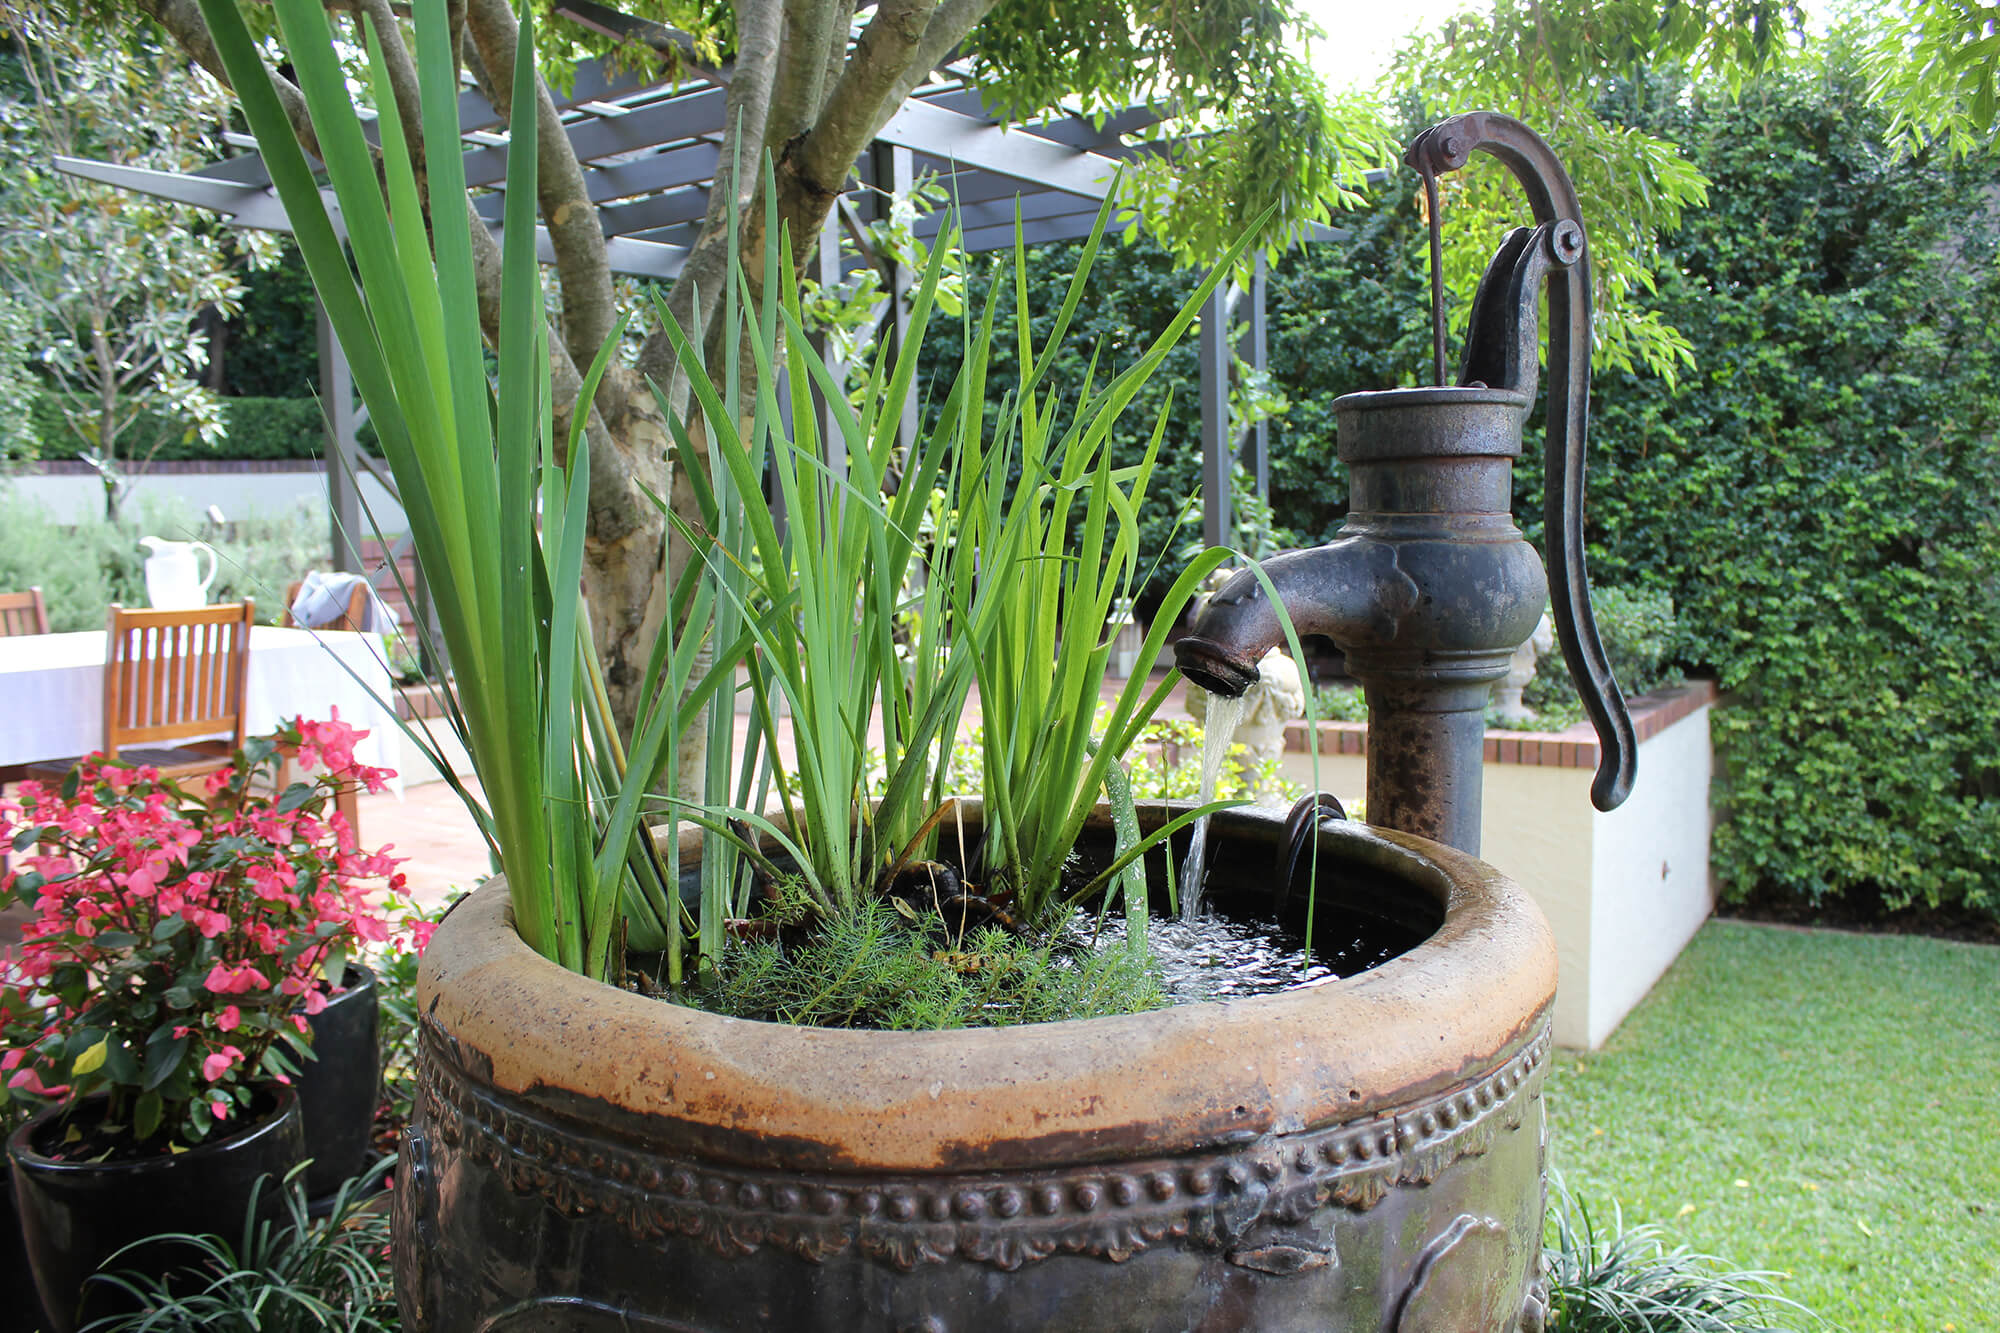 clayfield formal garden water bowl with water plants